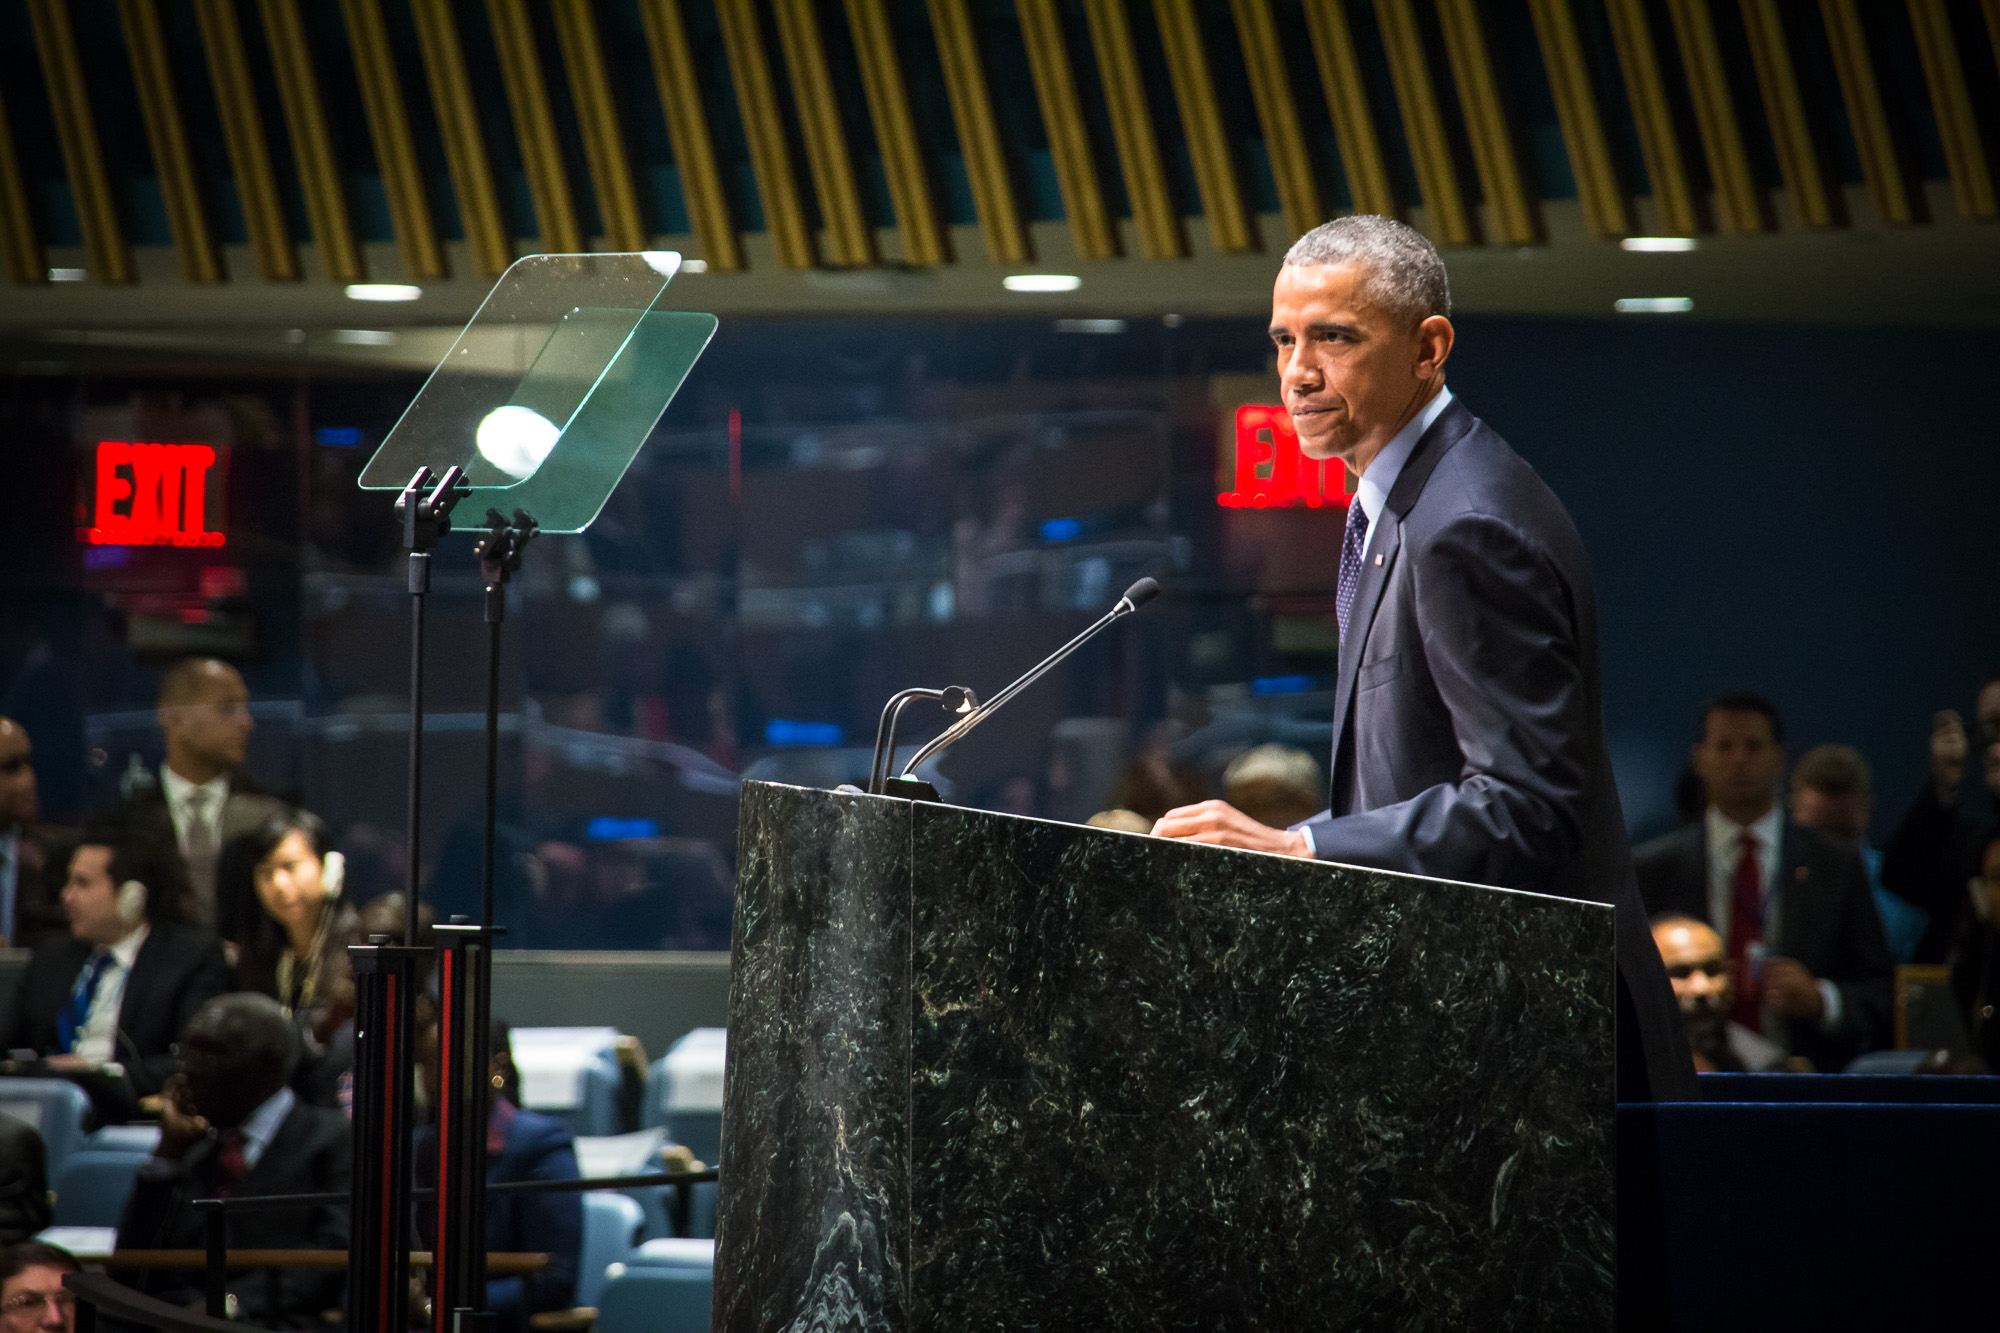 Report: Obama Wants To Be UN Secretary General While Netanyahu Tries To Stop Him Featured